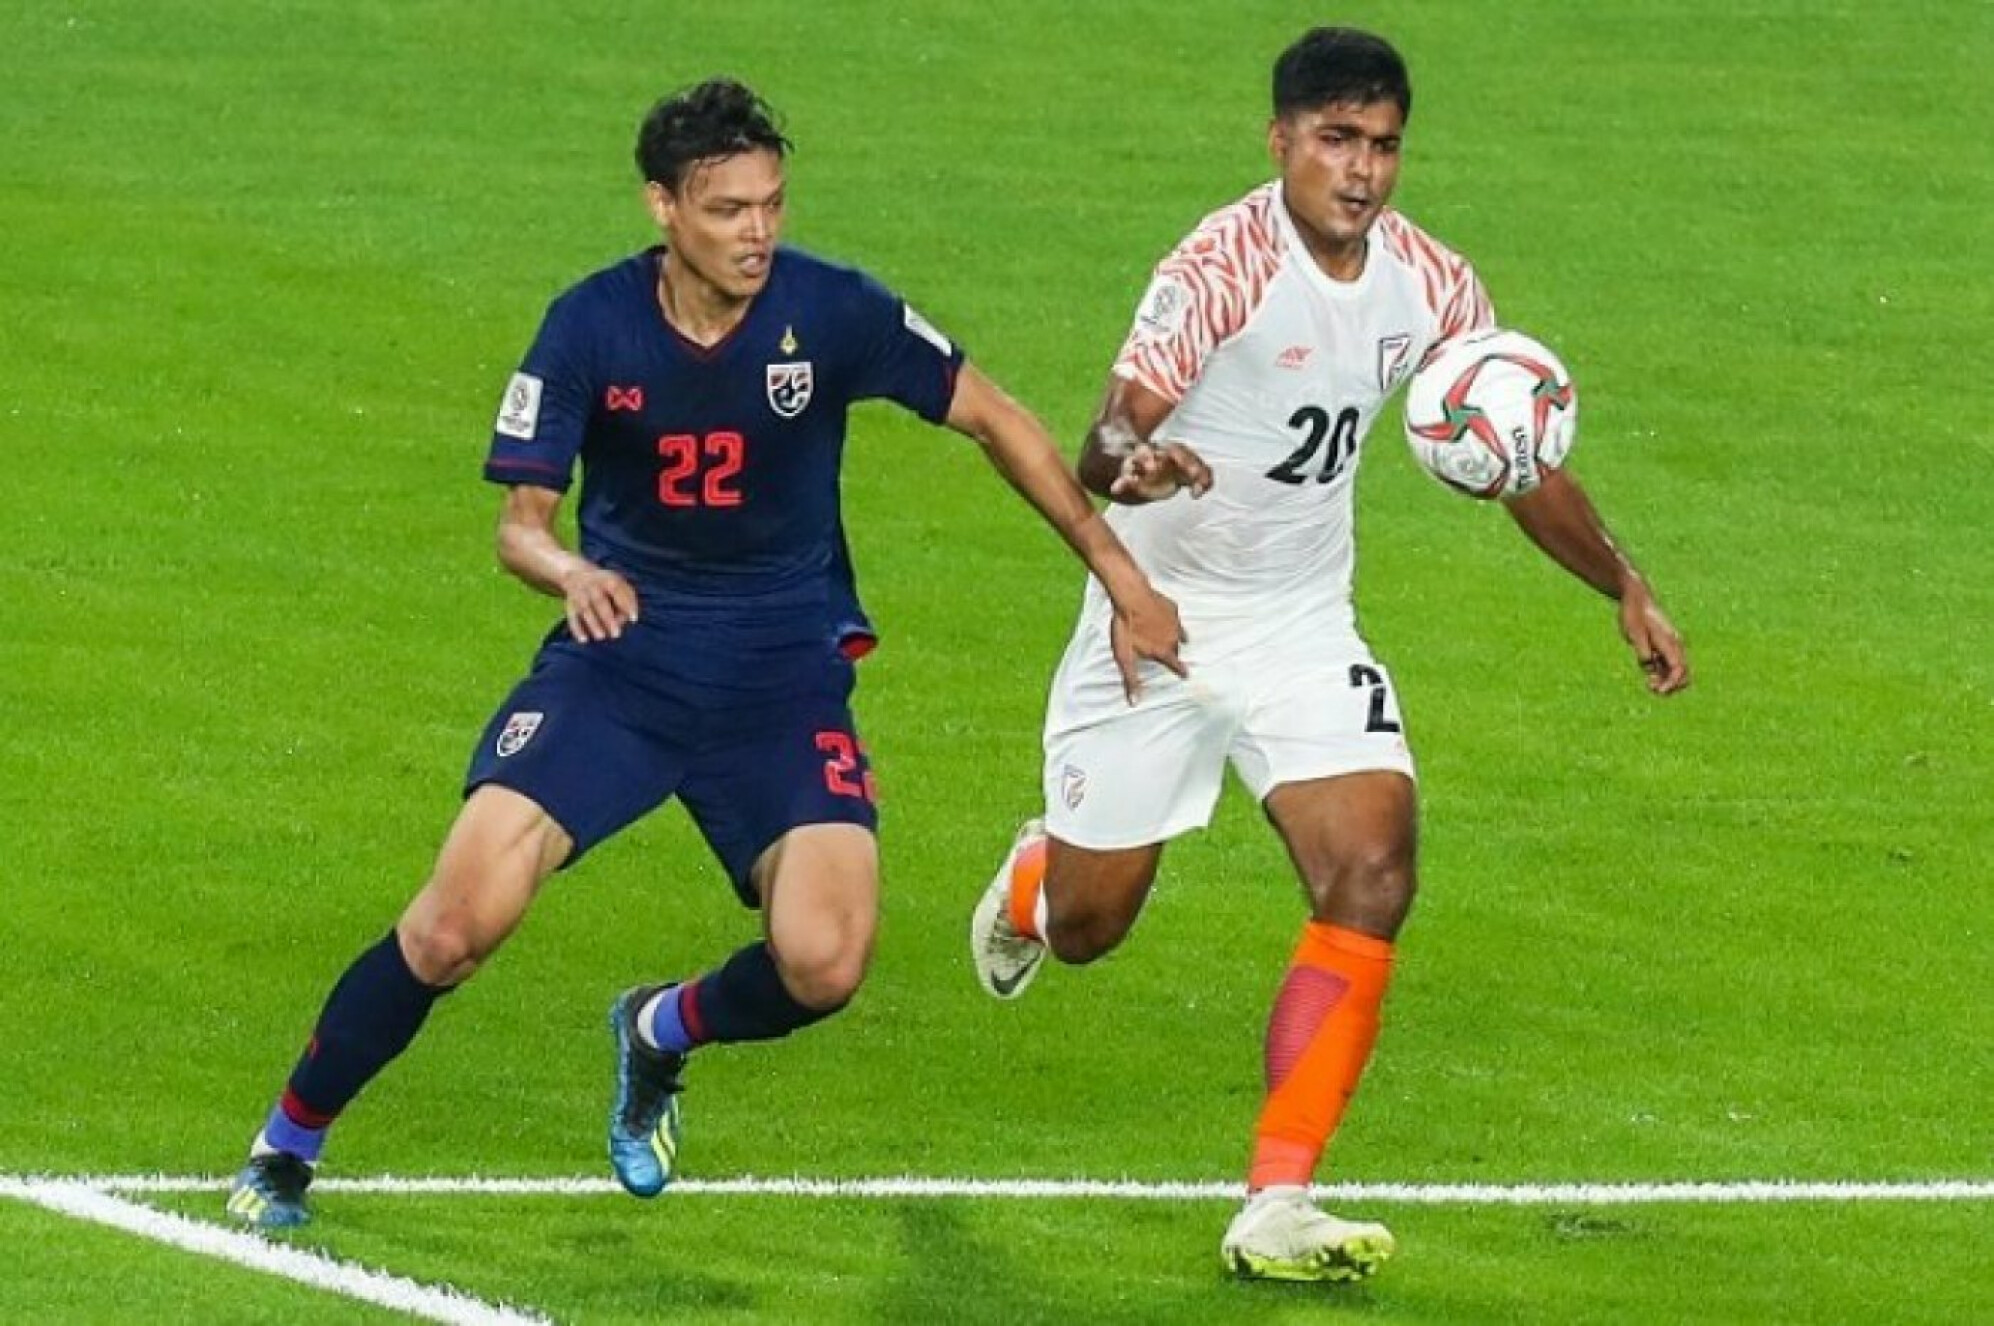 We will give UAE a real fight- Pritam Kotal